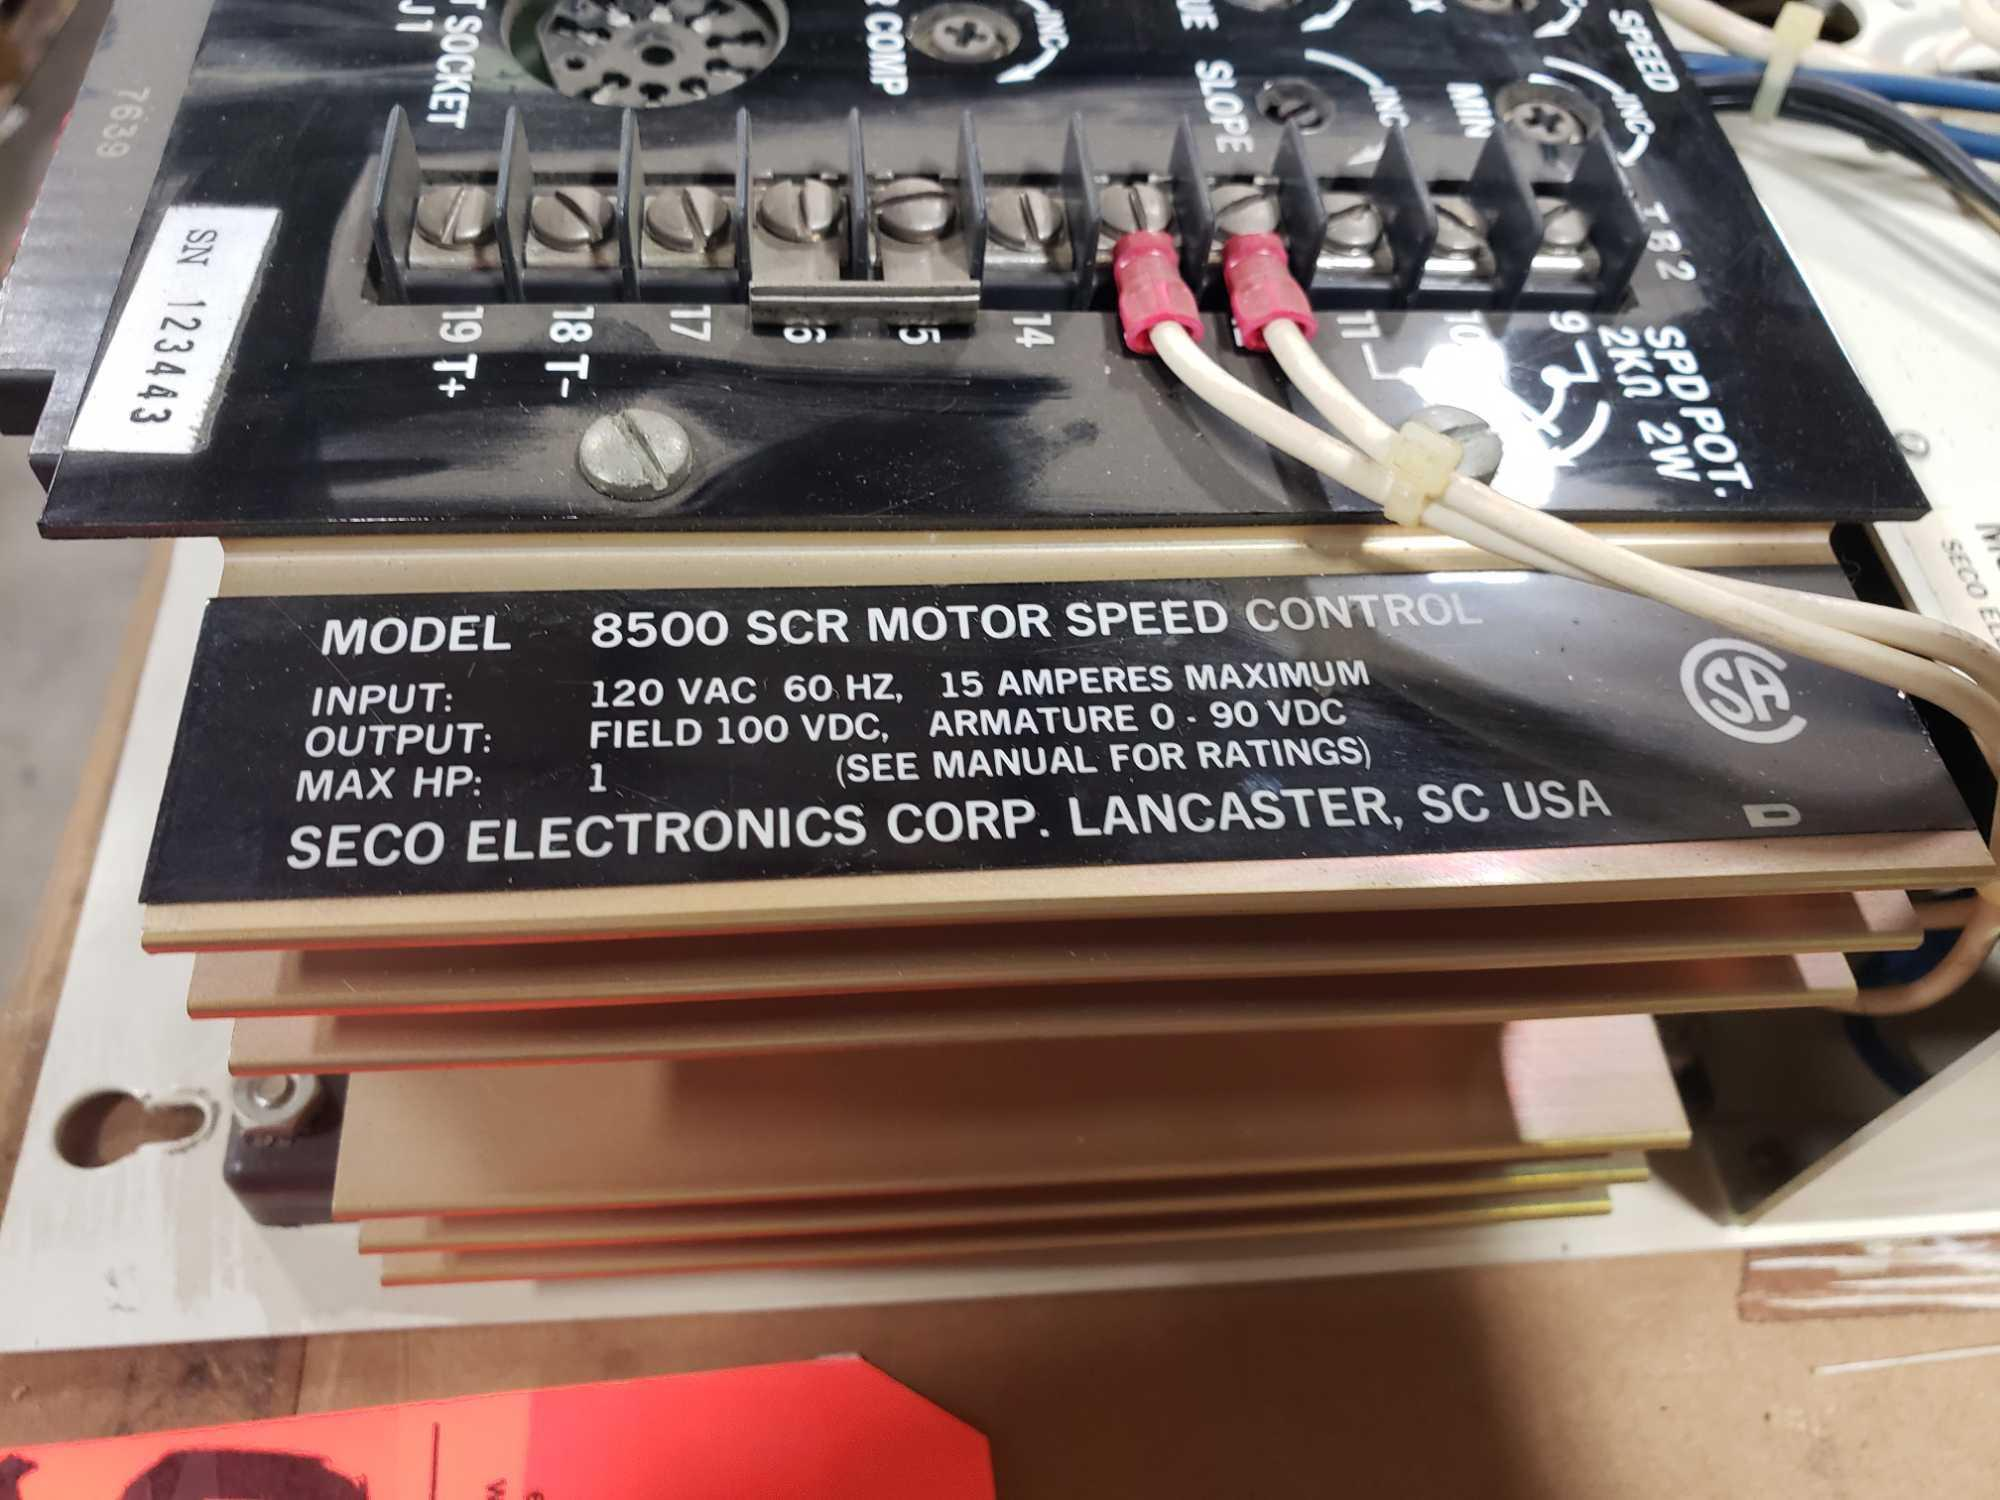 Seco Electronics model 8500 SCR motor control part 8504-N0.. New in box. - Image 3 of 4